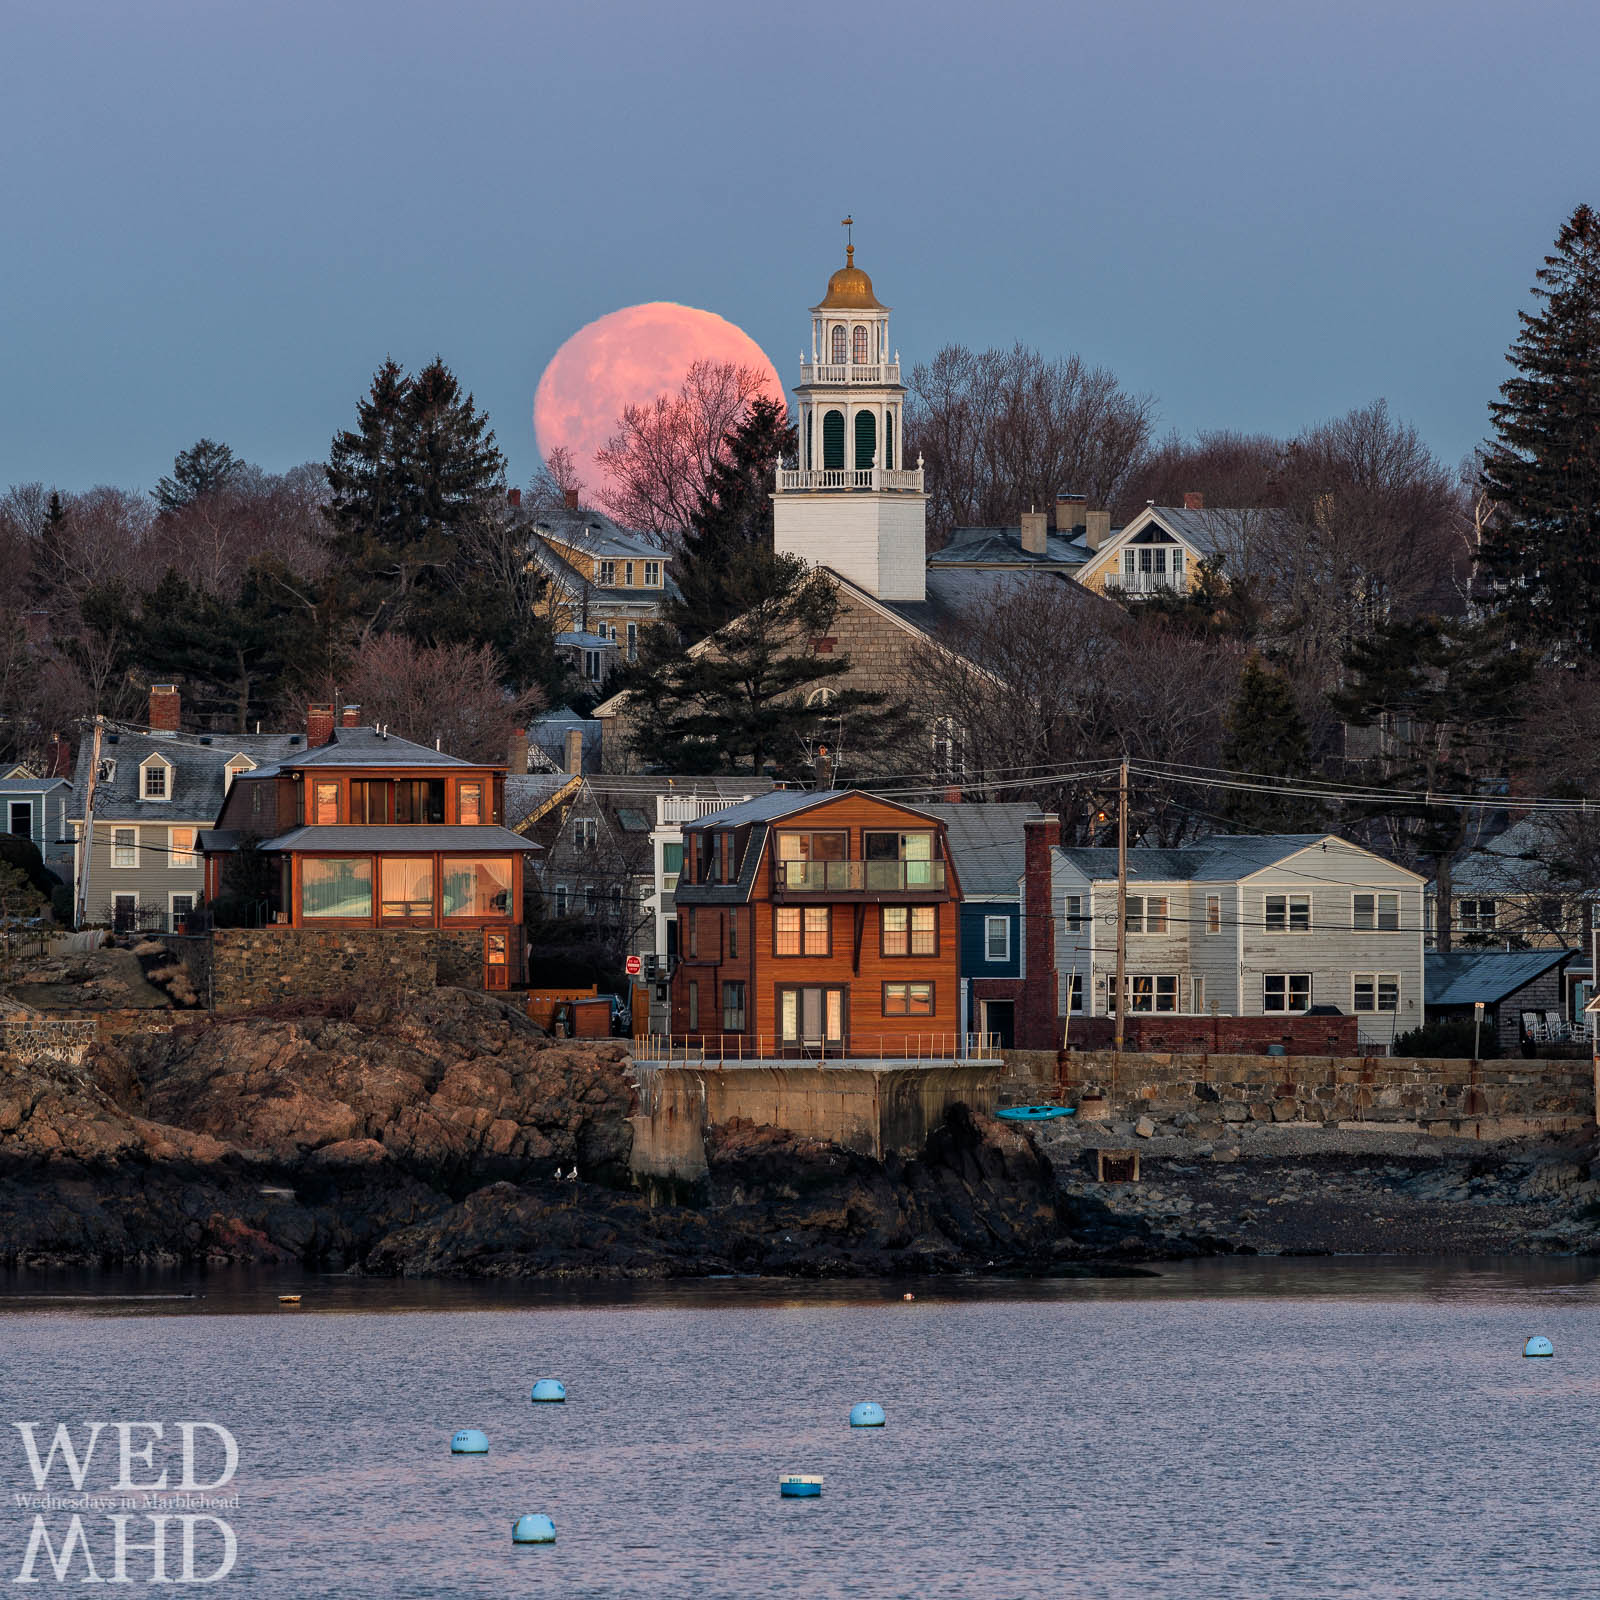 The full moon sets behind Old North Church in Marblehead on a late March morning wtih the sun's early light reflecting in the homes along the harbor